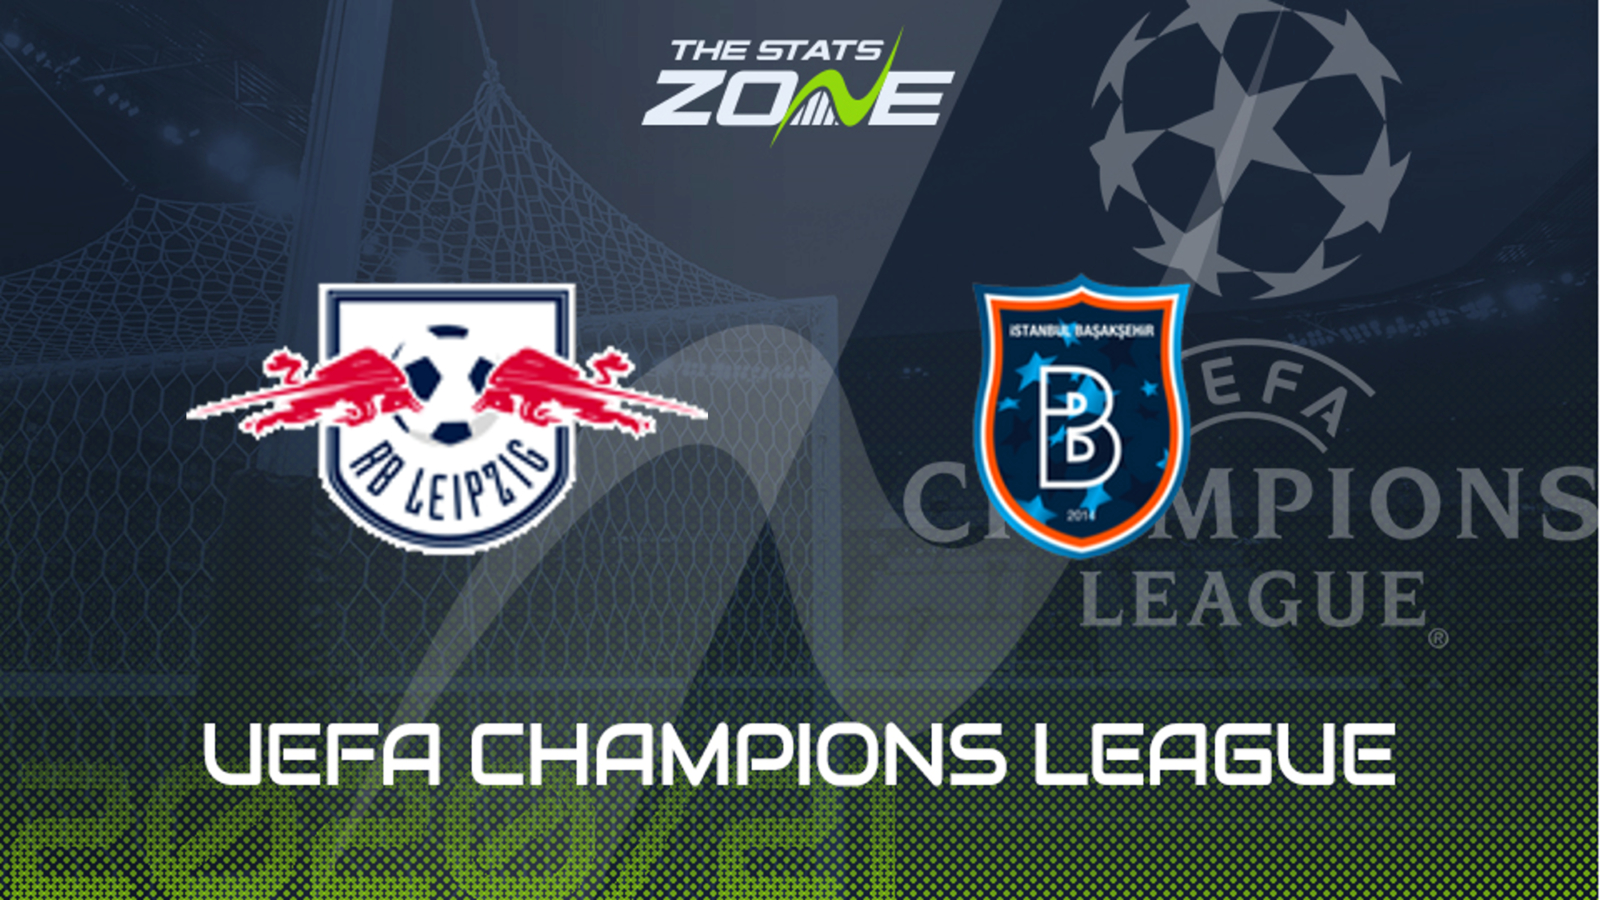 2020 21 Uefa Champions League Rb Leipzig Vs Istanbul Basaksehir Preview Prediction The Stats Zone